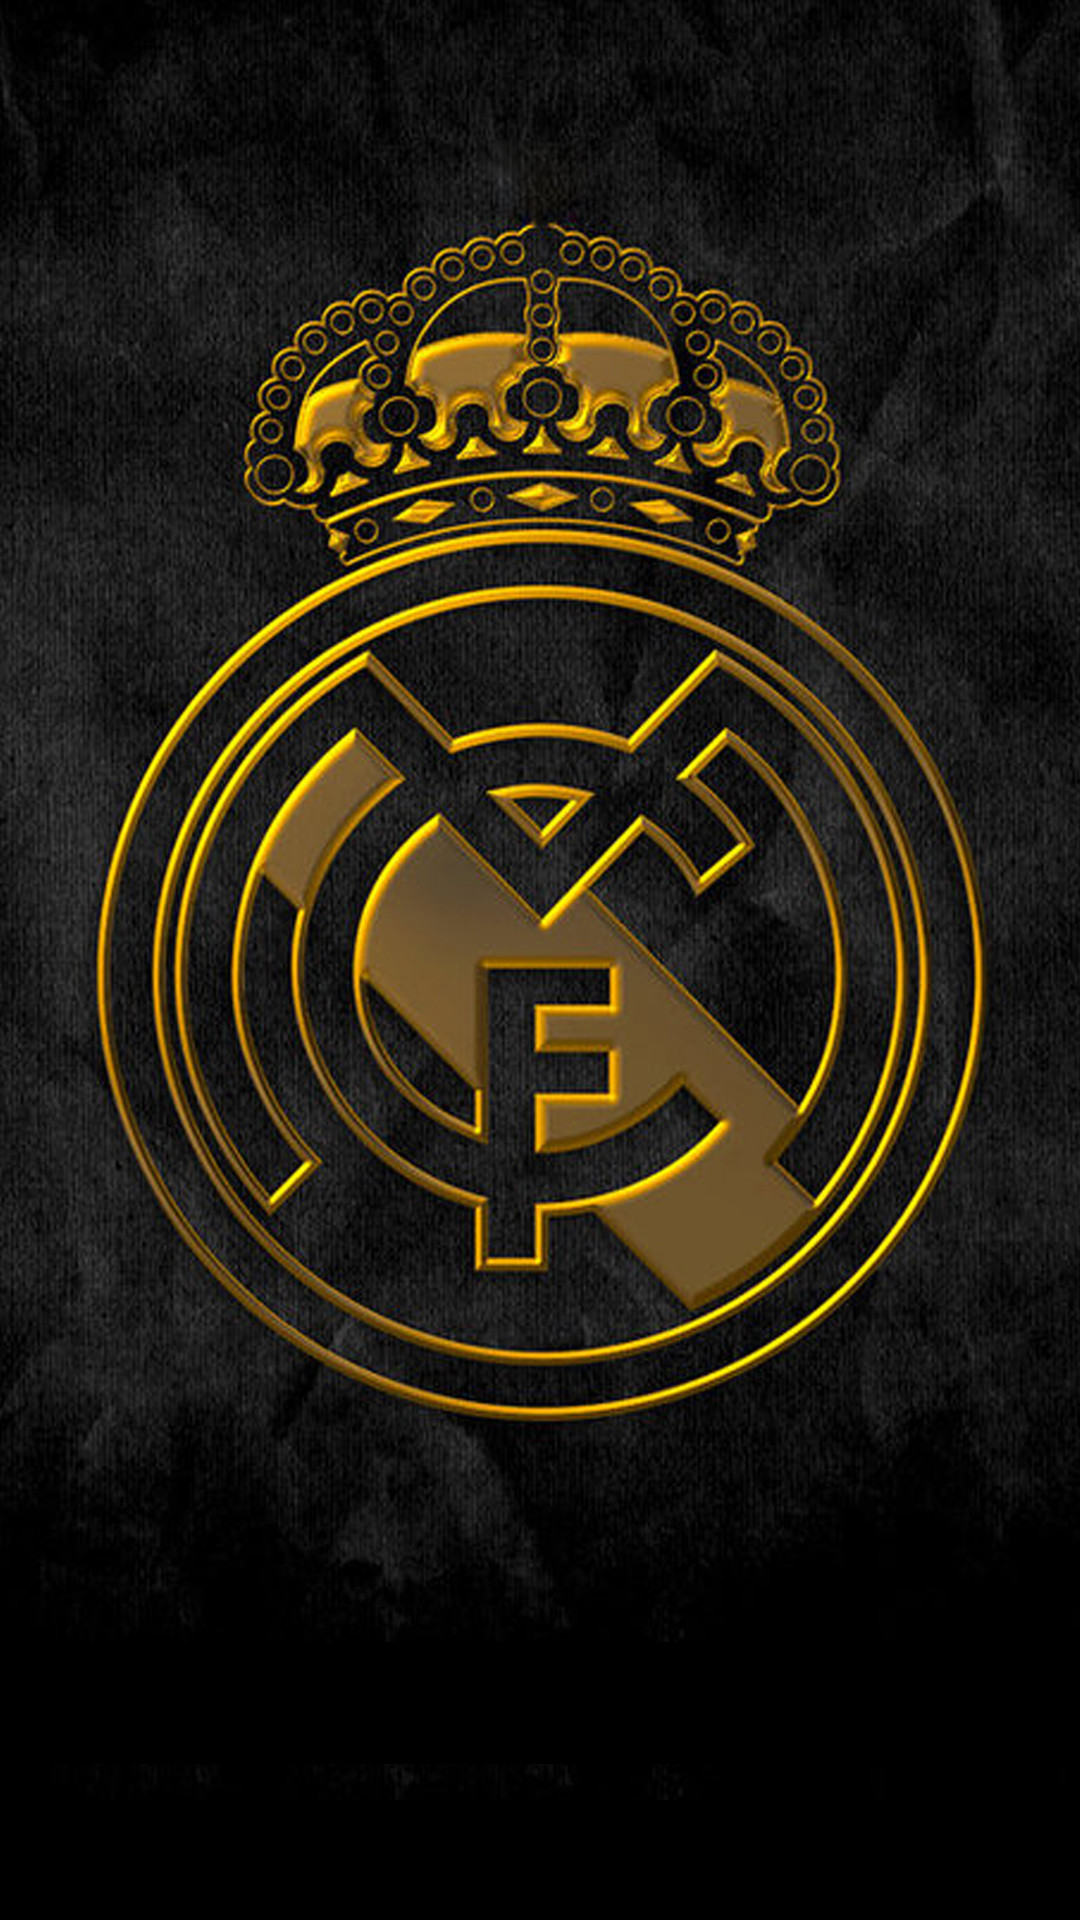 Res: 1080x1920, Fifa App, Ios Wallpapers, Ipad Pro, Soccer Players, Messi, Real Madrid,  Ronaldo, Apple, Football Players